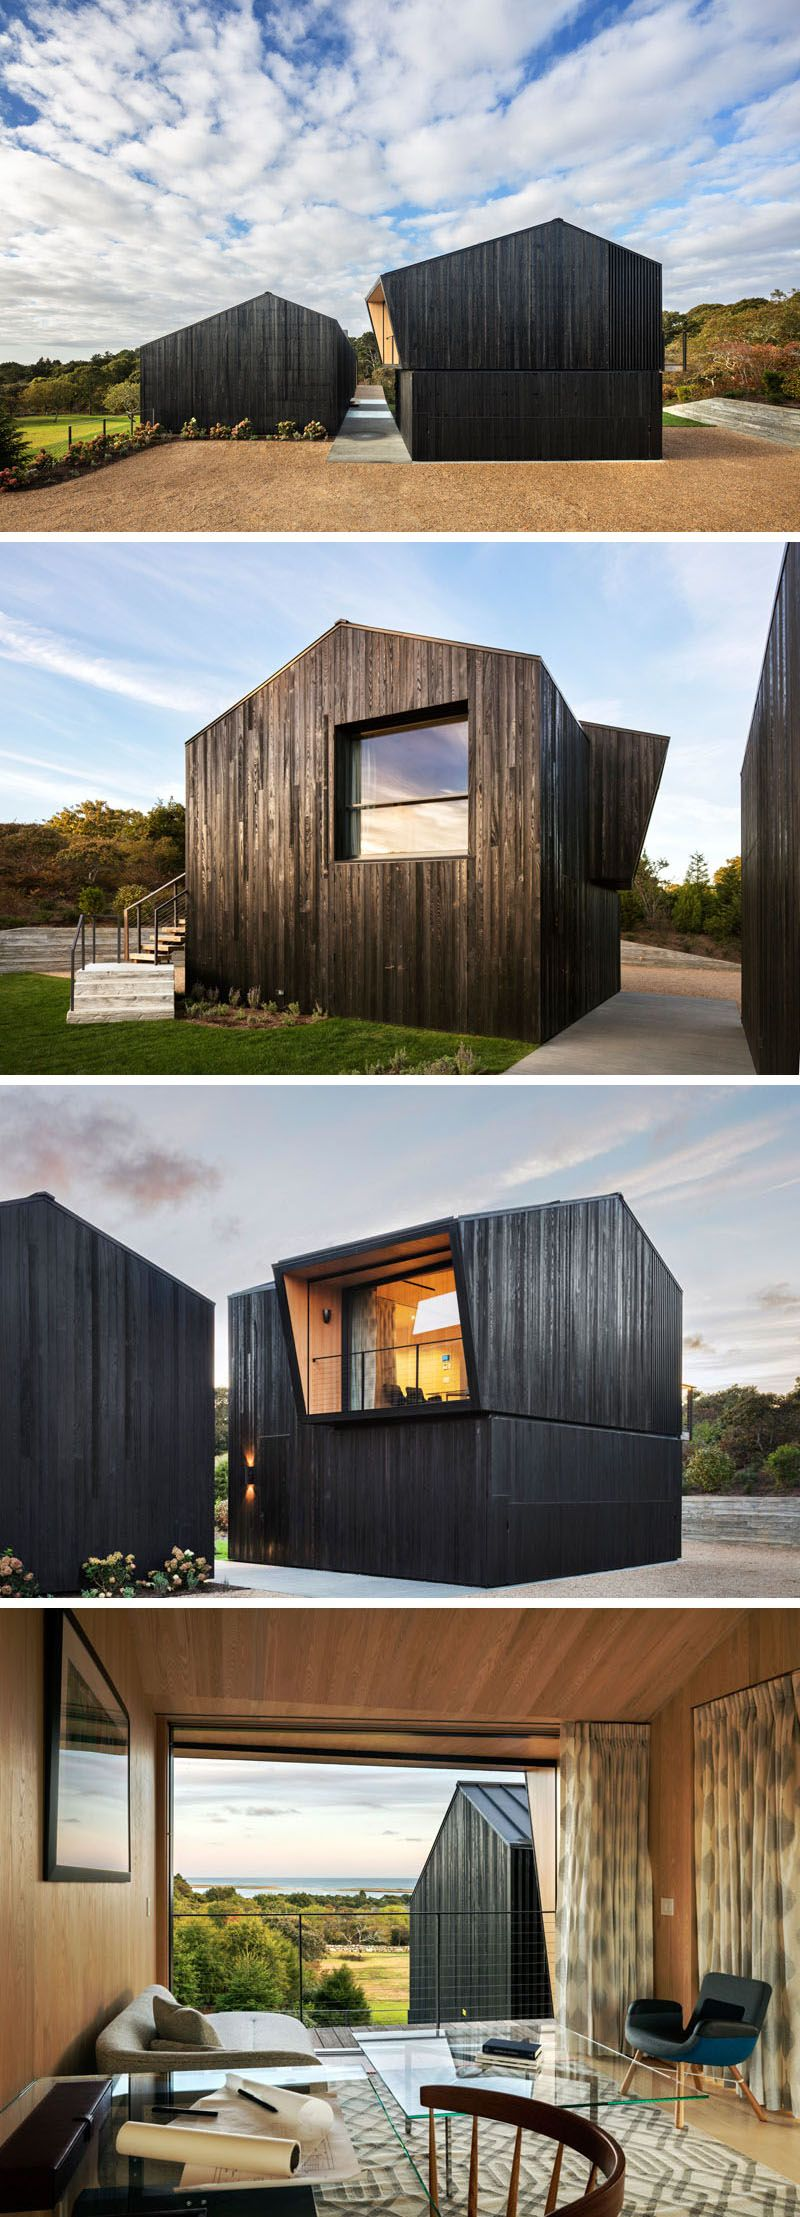 Blackened Wood Siding Covers This New House In